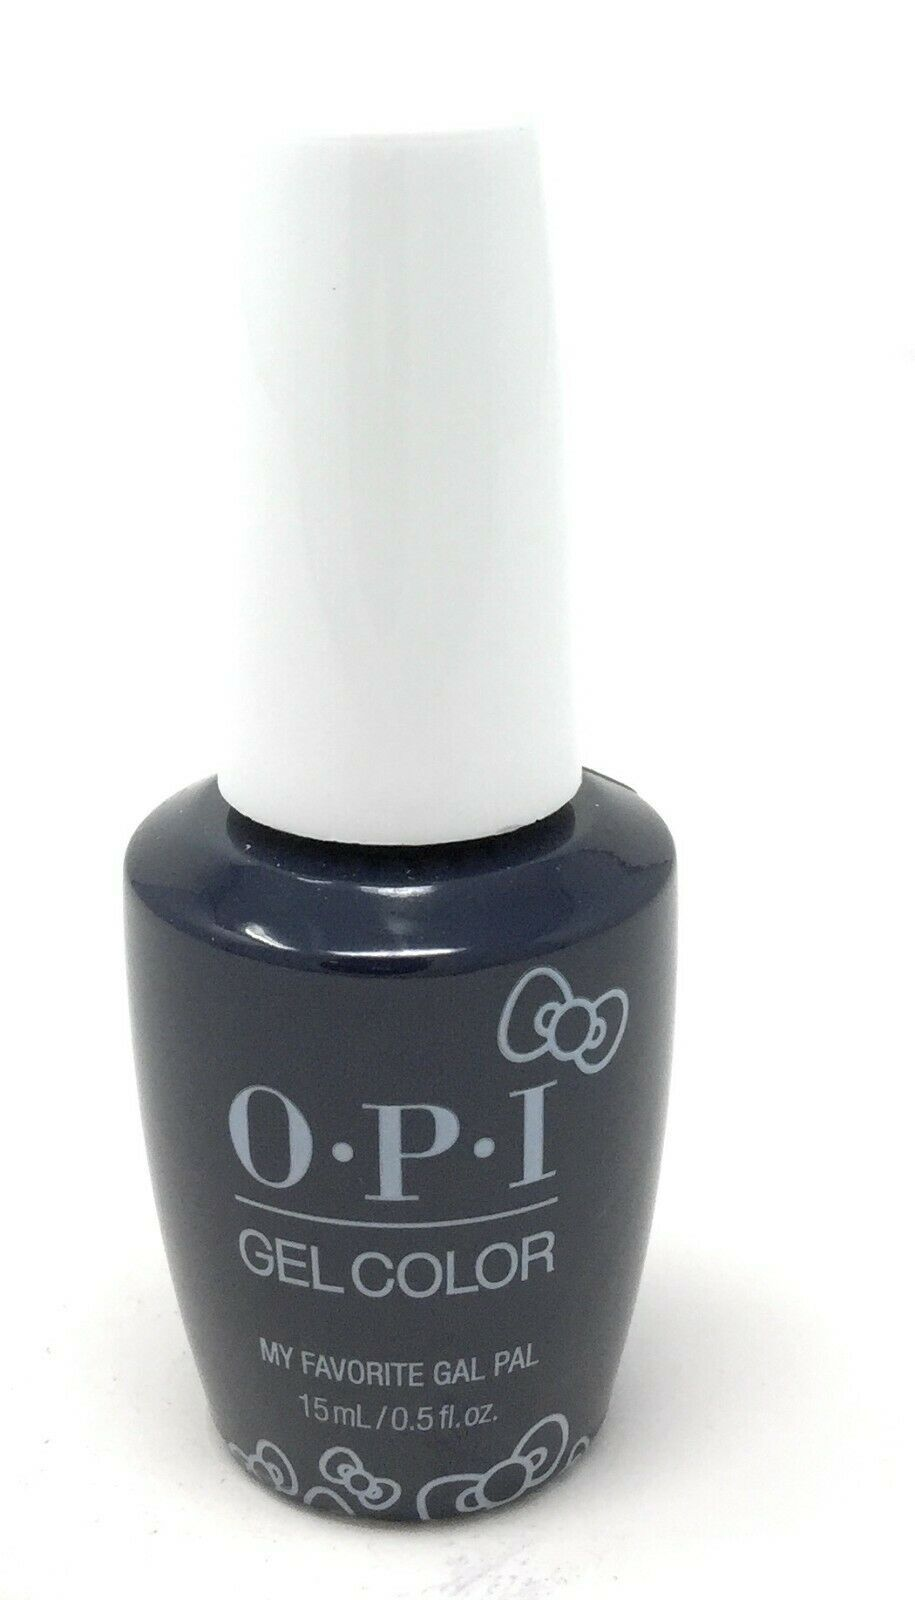 OPI Gelcolor- Hello Kitty Collection- My Favorite Gal Pal .5oz- , HPL09